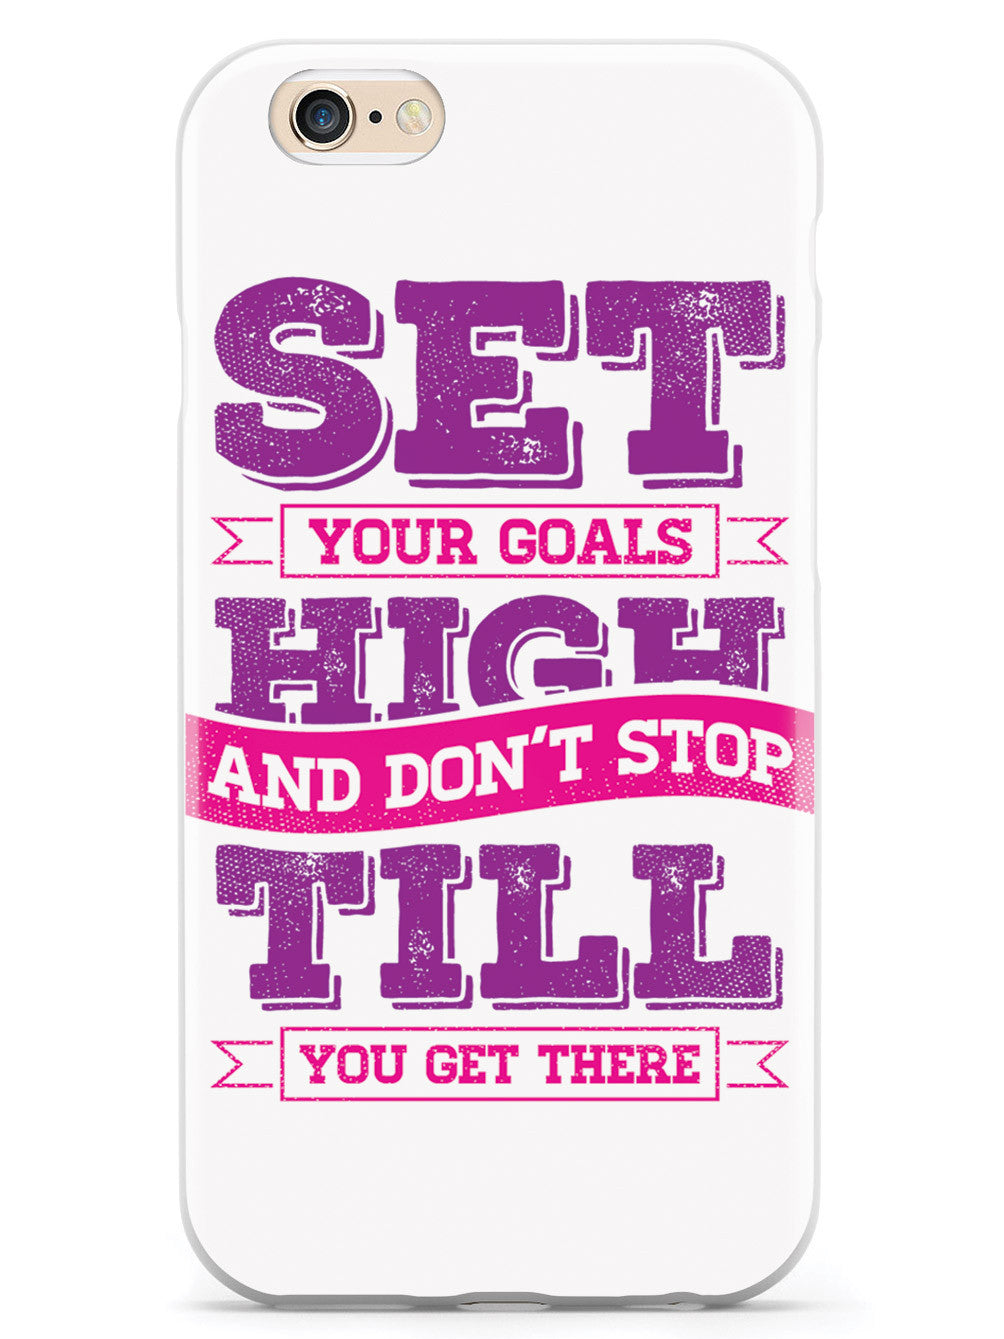 Set Your Goals High, Don't Stop - White Case